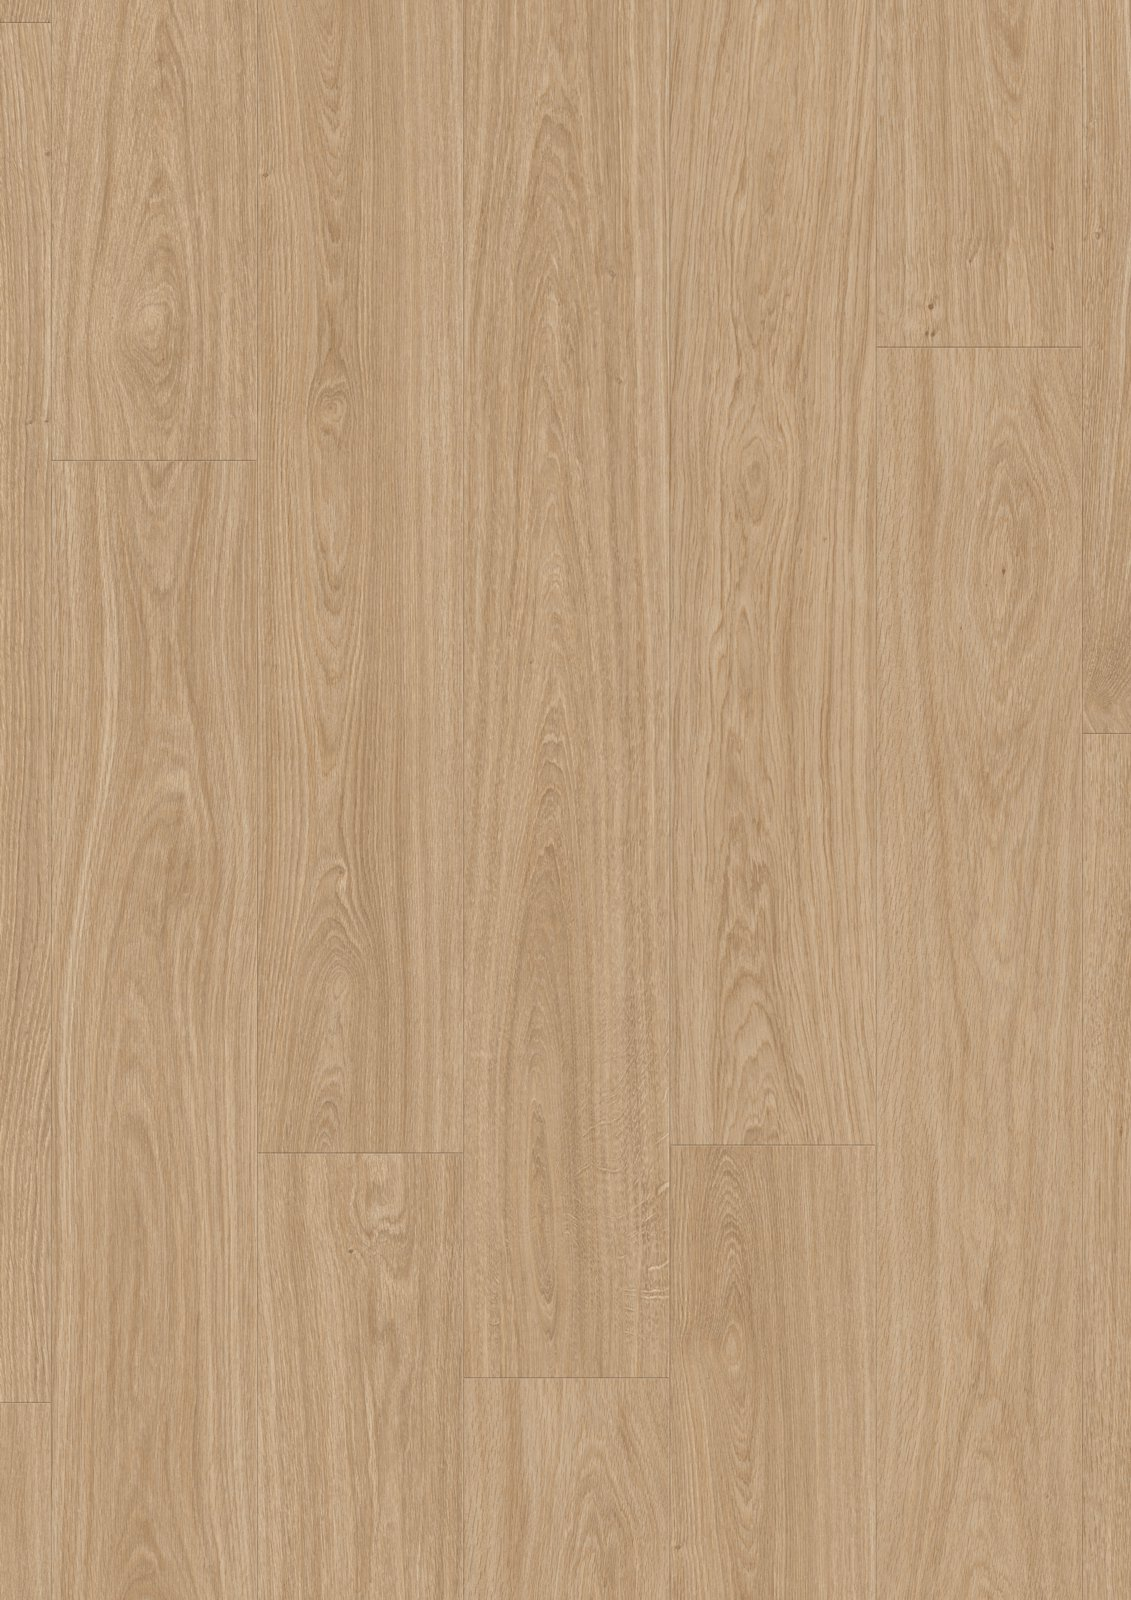 Vinyyli Pergo Premium 1251x187x4,5 mm Light Nature Tammi lauta 4V